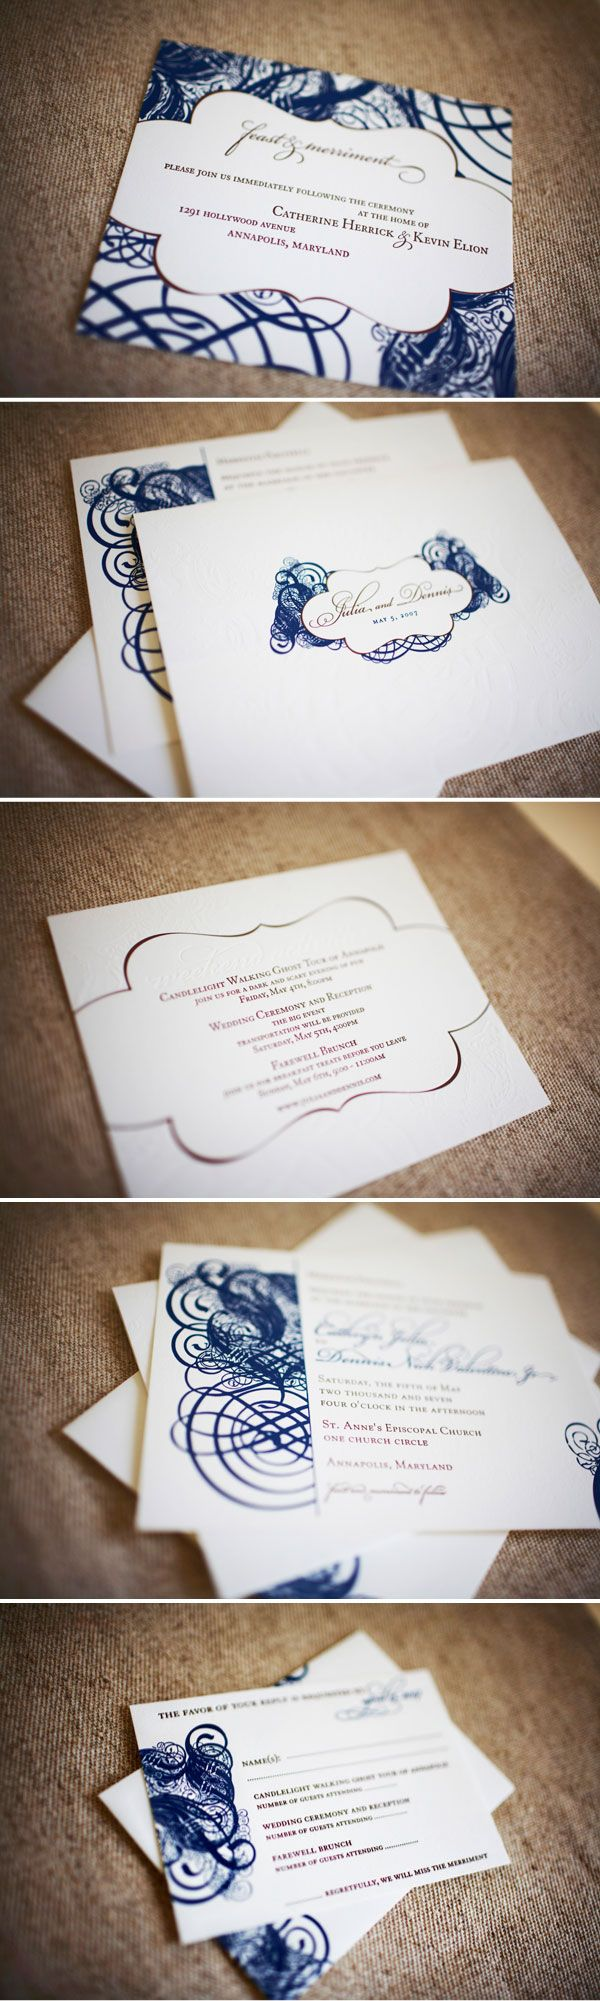 My amazing wedding invitation suite designed and